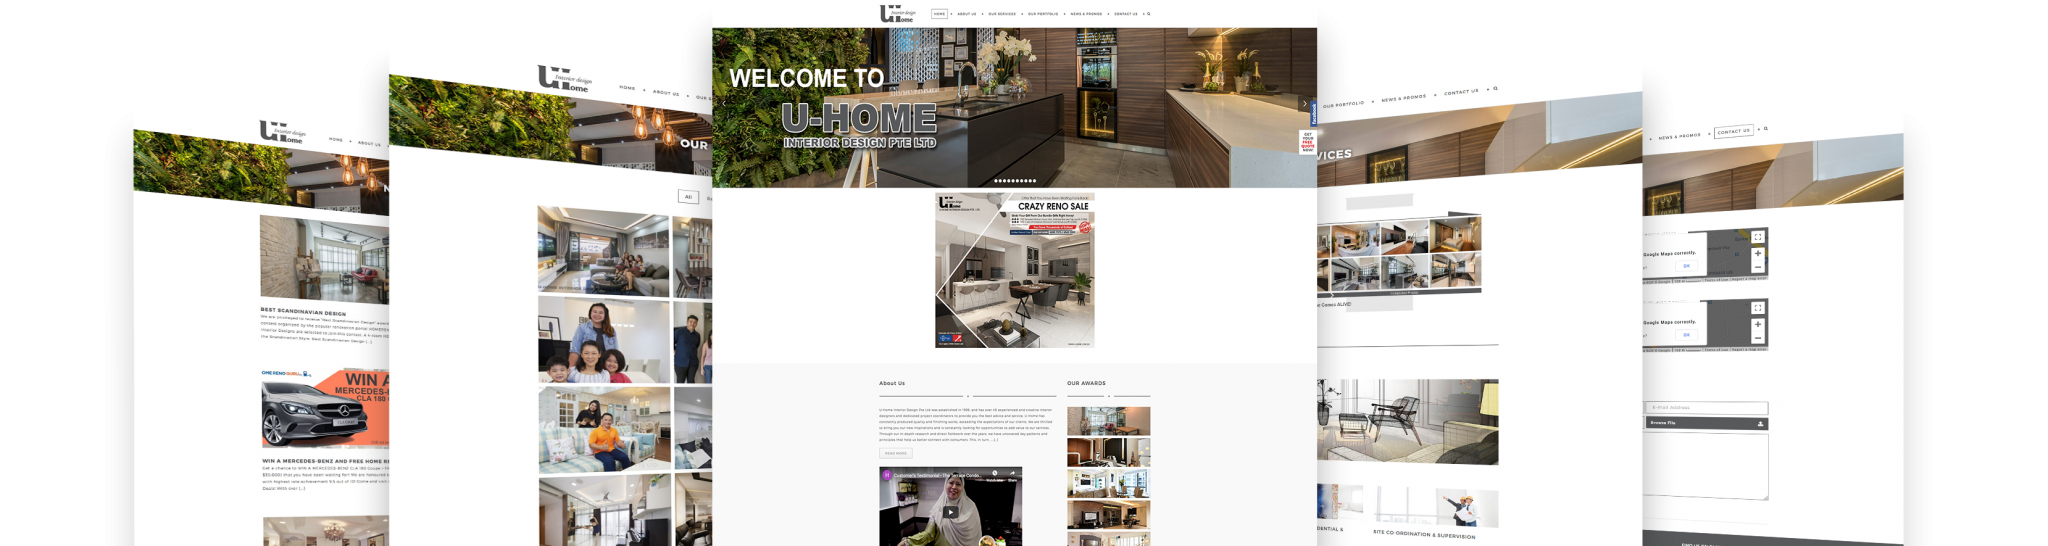 uhome 5 display web design